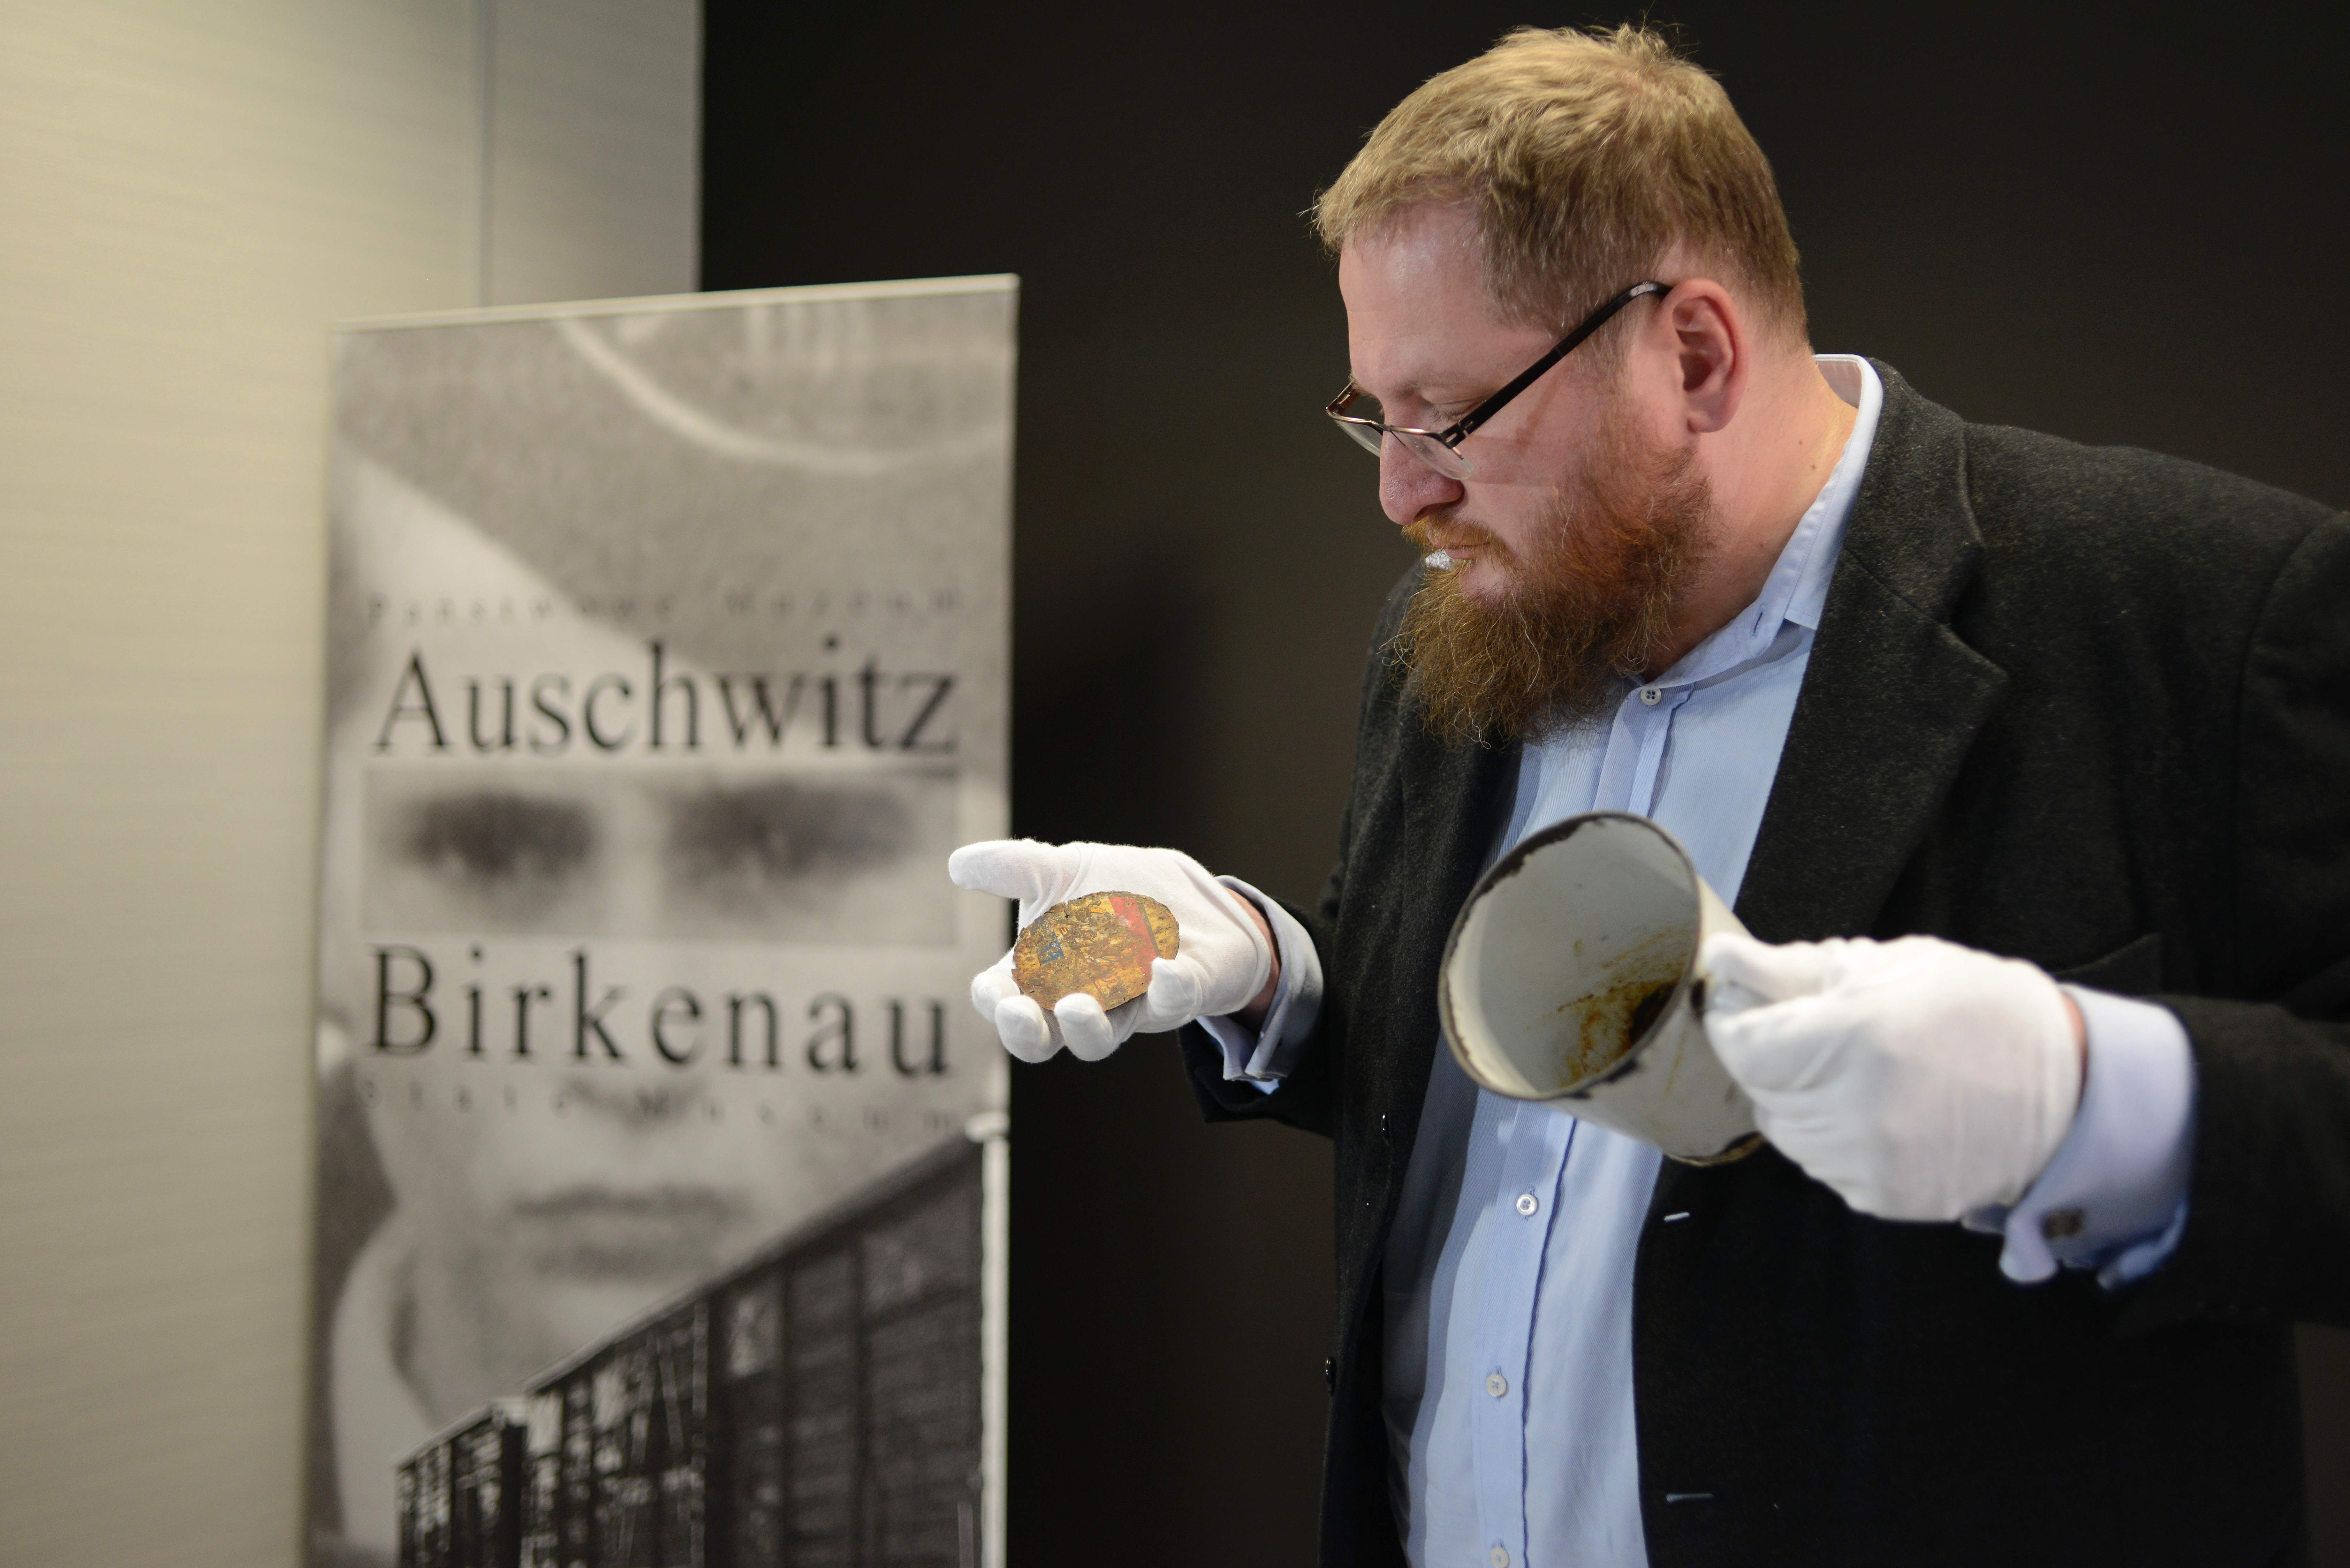 Piotr Cywinski, director of the Auschwitz-Birkenau museum, presents a metal mug with a double bottom in which a gold ring and necklace were found by employees of the museum in Oswiecim, Poland, May 19, 2016.